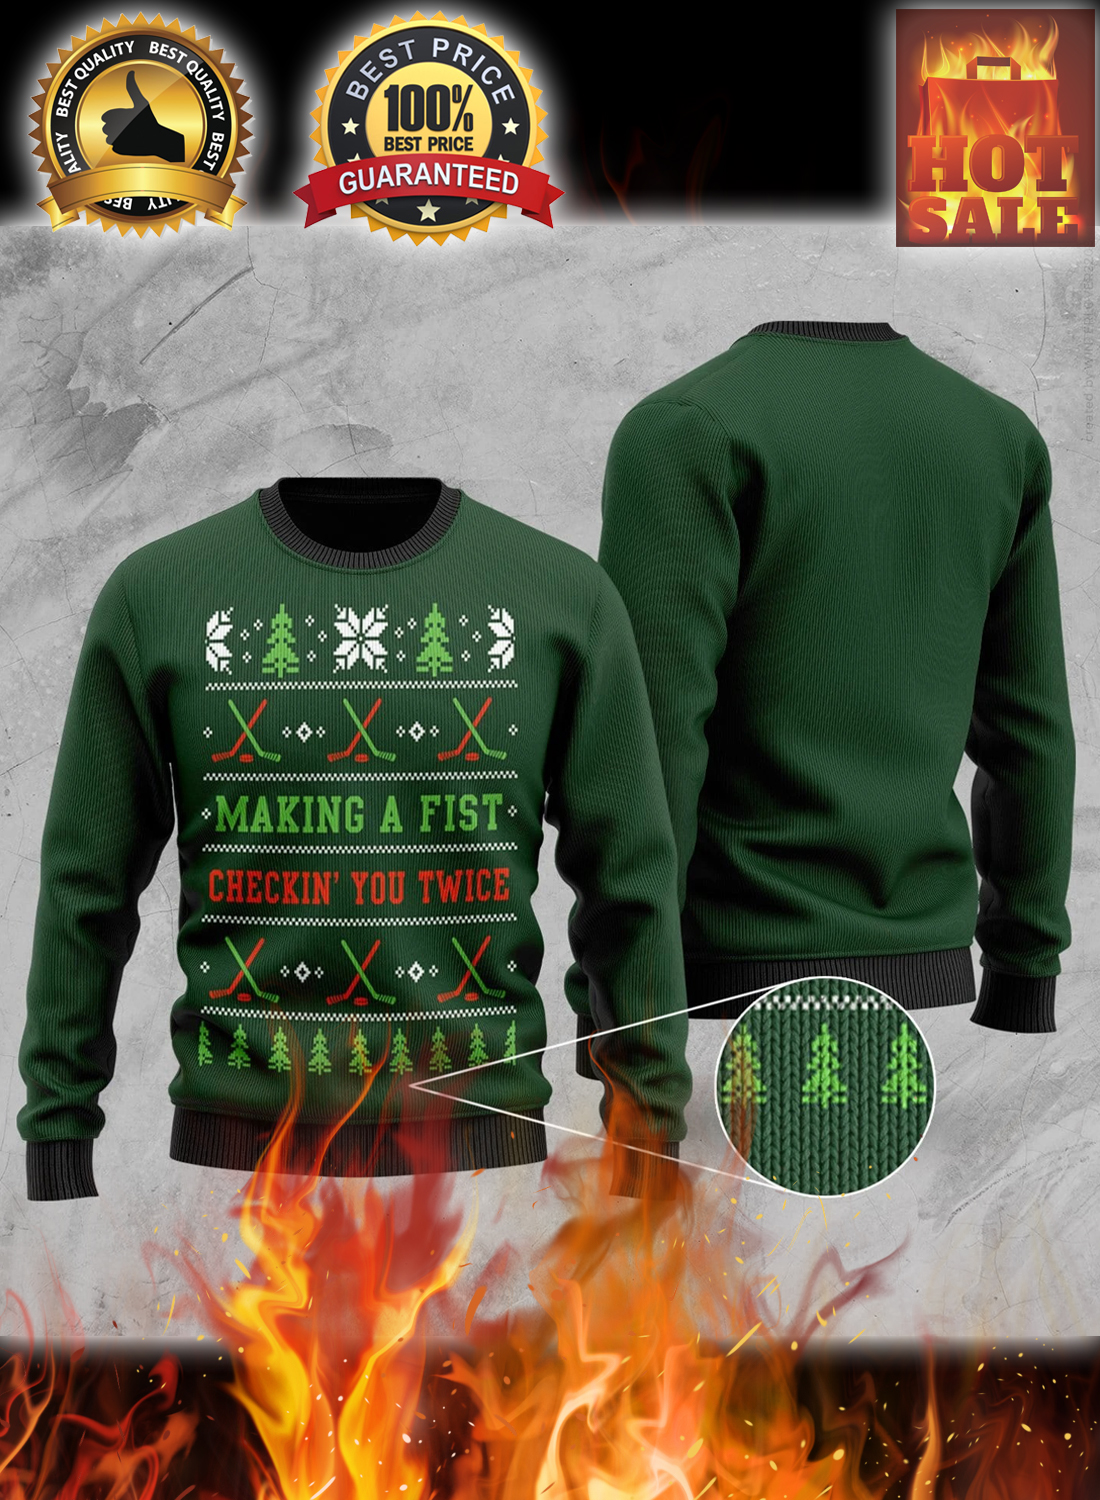 Hockey making a first checking you twice christmas sweater 1